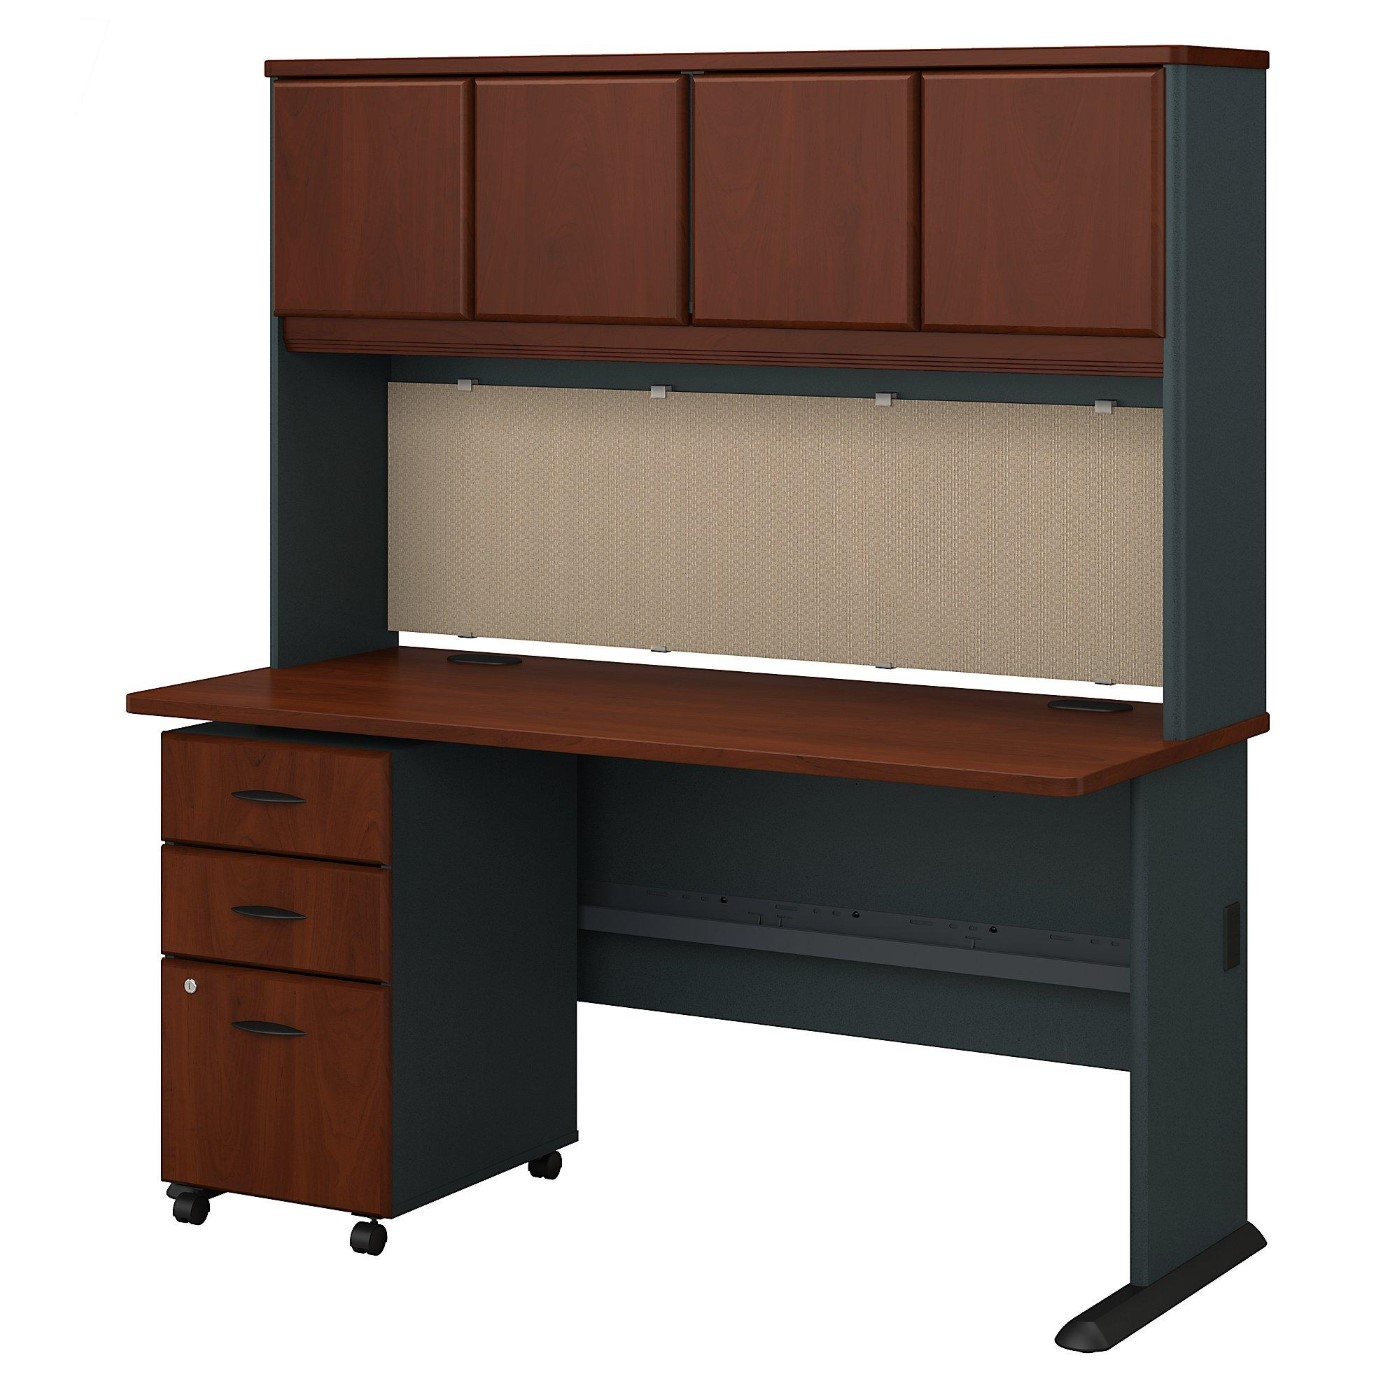 BUSH BUSINESS FURNITURE SERIES A 60W DESK WITH HUTCH AND MOBILE FILE CABINET. FREE SHIPPING.